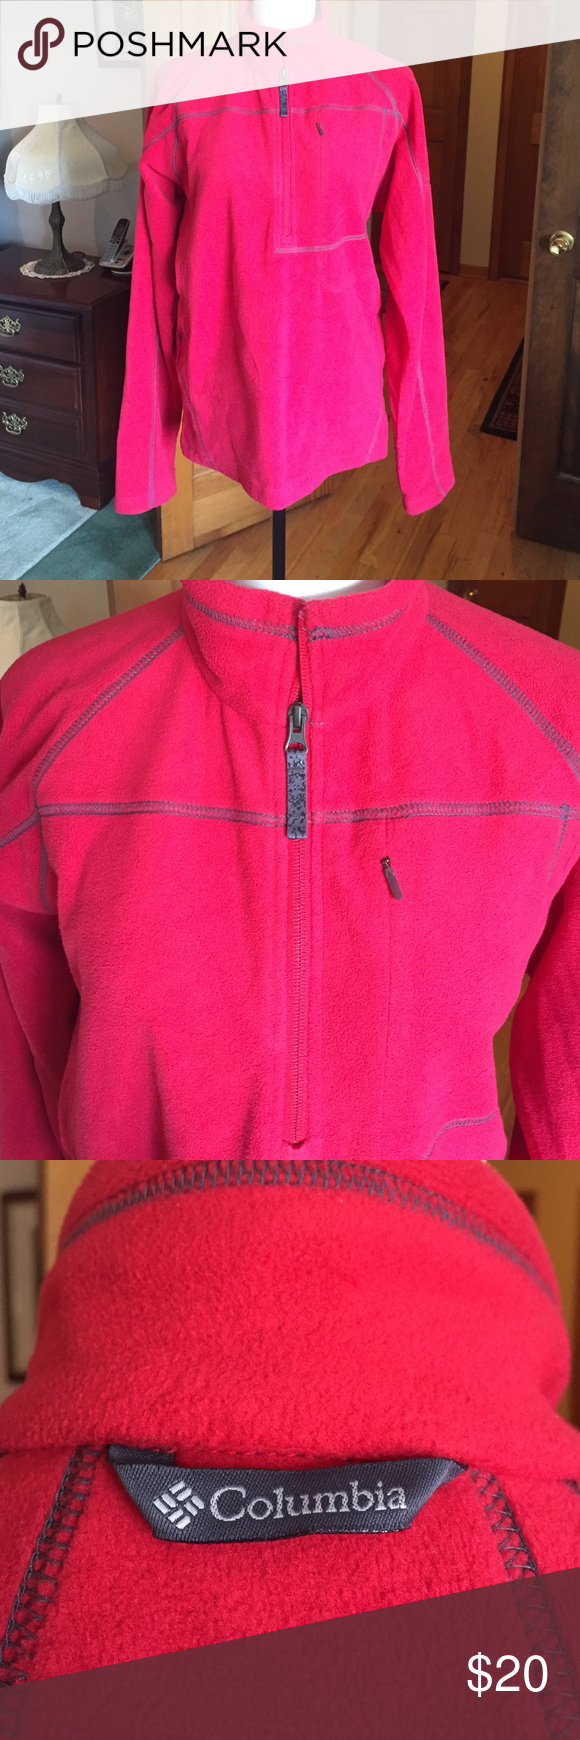 SUPER CUTE COLUMBIA pull over SUPER CUTE Columbia pullover fleece top red with gray detail. (Looks pink in some pics but pic 3 is closest color). Great used condition. Columbia Jackets & Coats